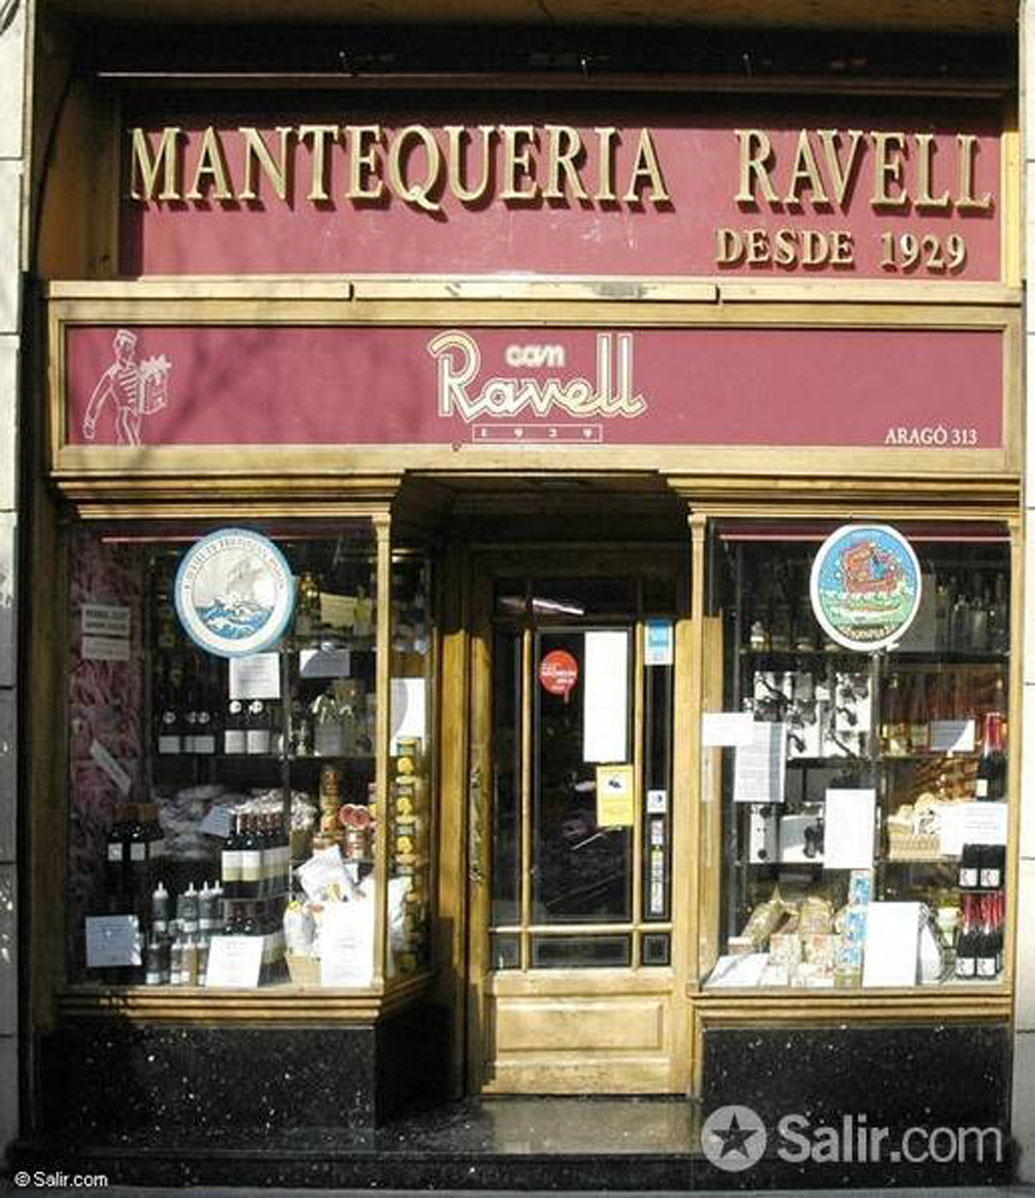 can_ravell